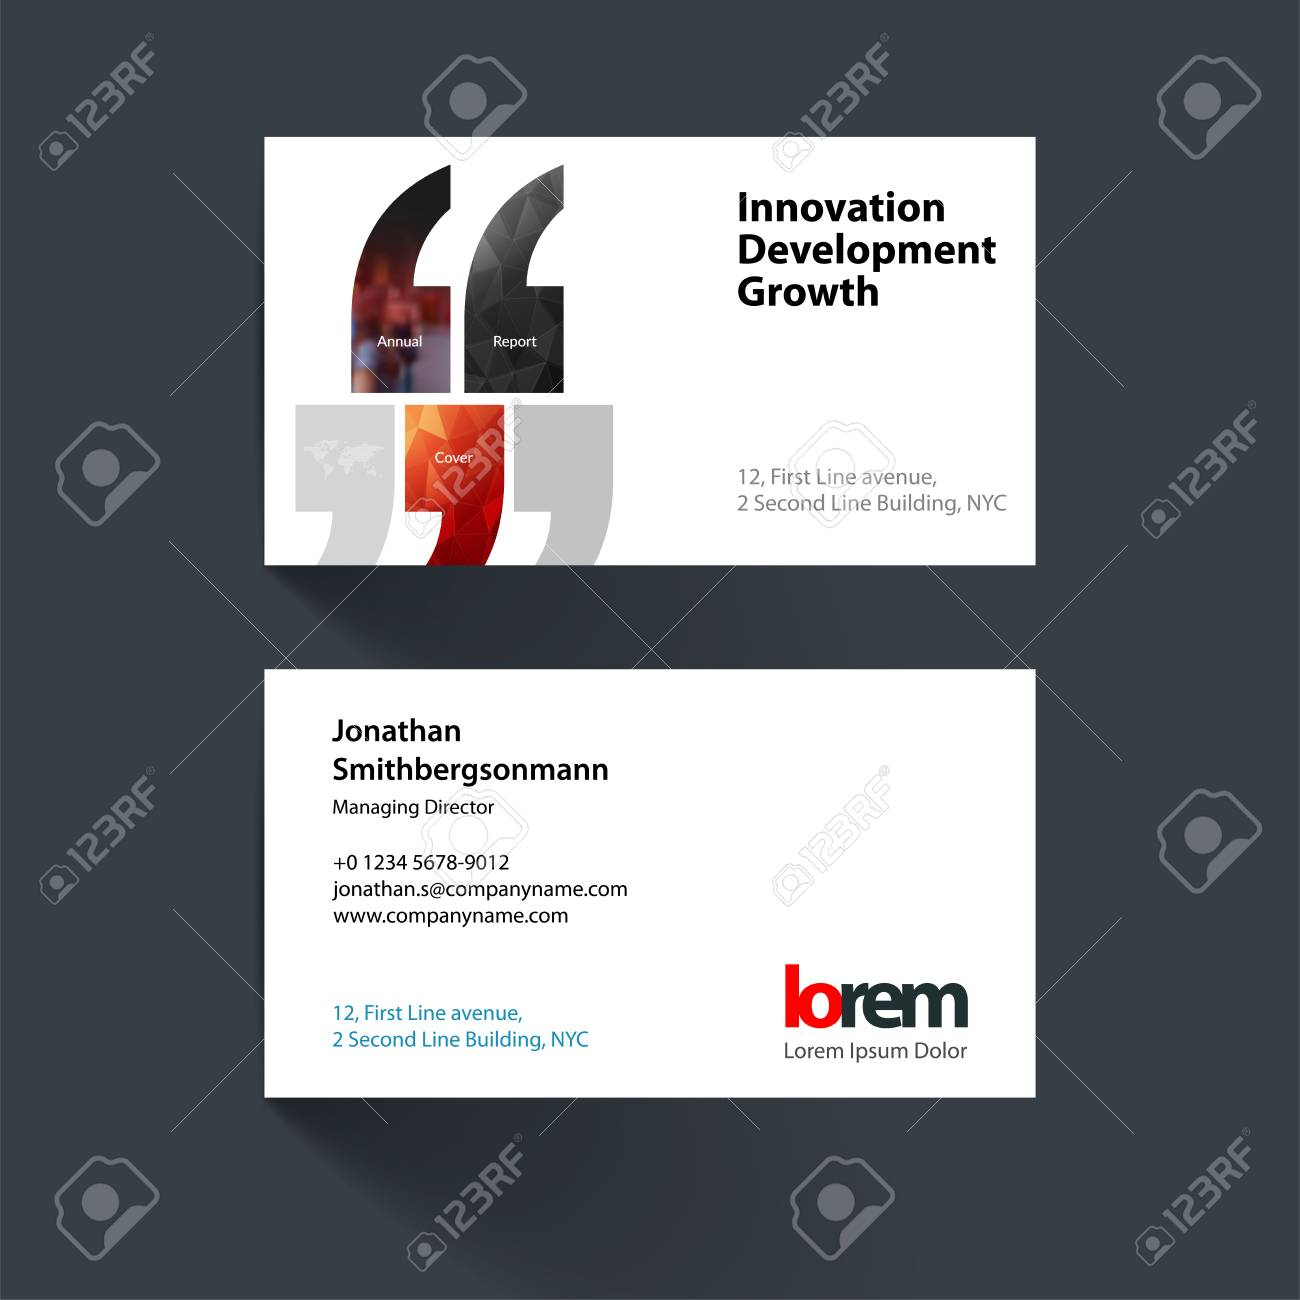 Vector Business Card Template With Quotes, Commas For Eco, Busin ...